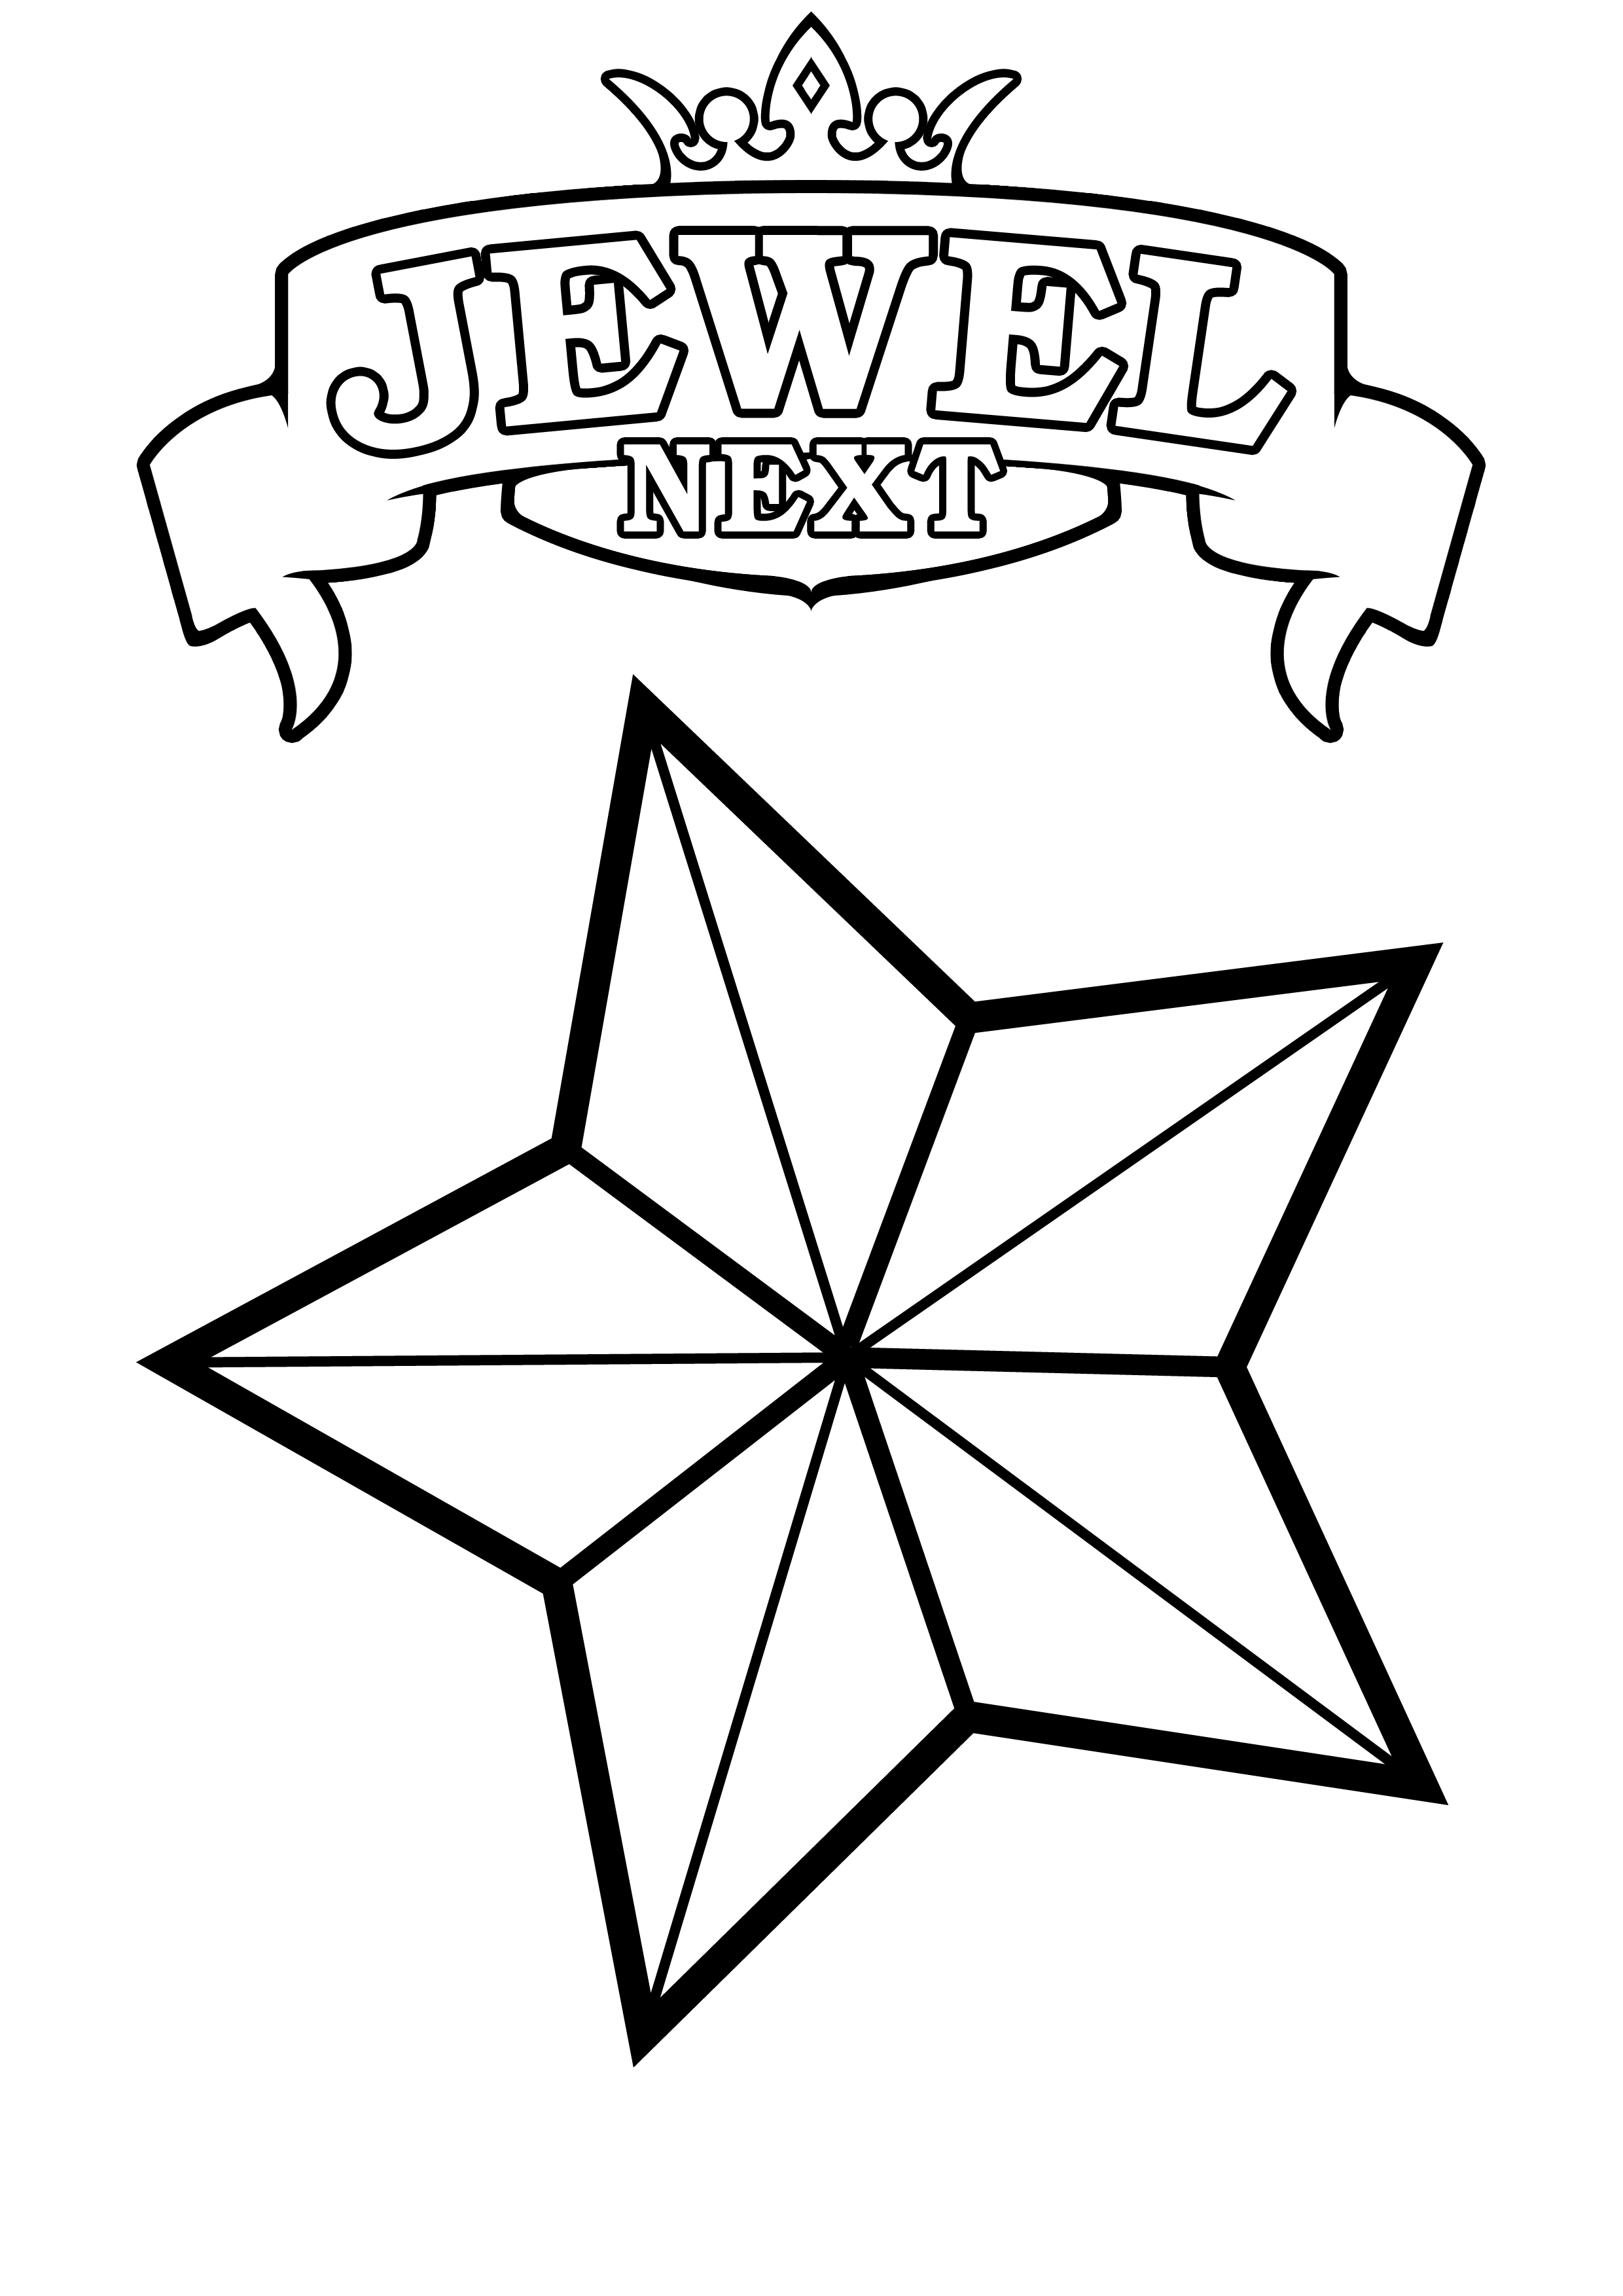 coloring star images free printable star coloring pages for kids cool2bkids images star coloring